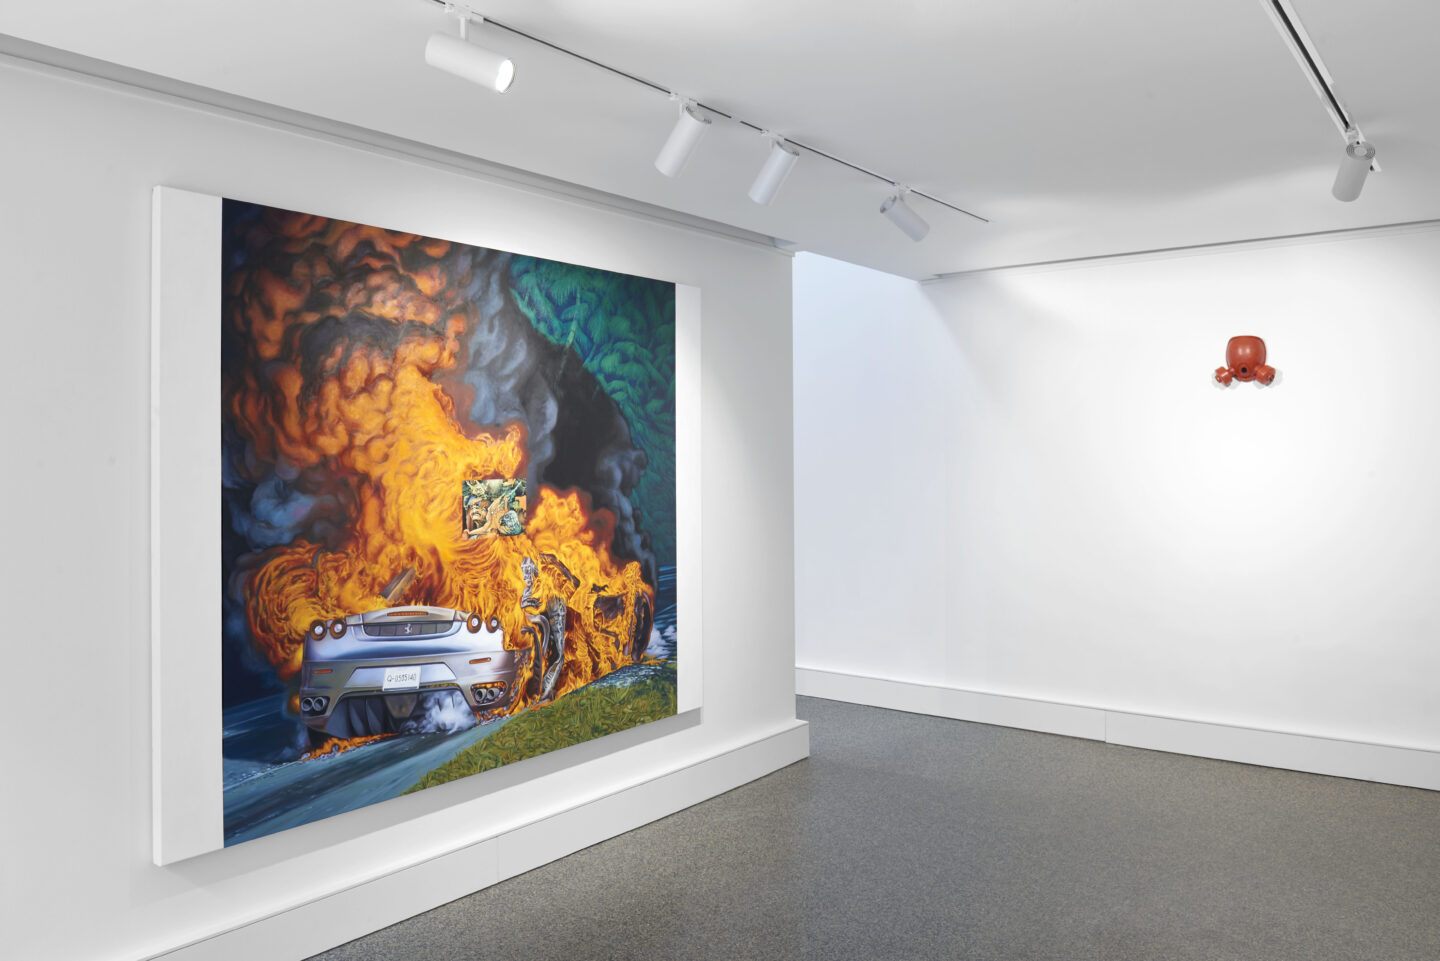 Exhibition View Groupshow «Supper Club; view on Mathieu Dafflon, Voyage au bout de la nuit, 2019 and Carmen Perrin, Masque peinture, 2020» at Wilde, Basel, 2020 / Photo: Philipp Hänger / Courtesy: the artists and Wilde